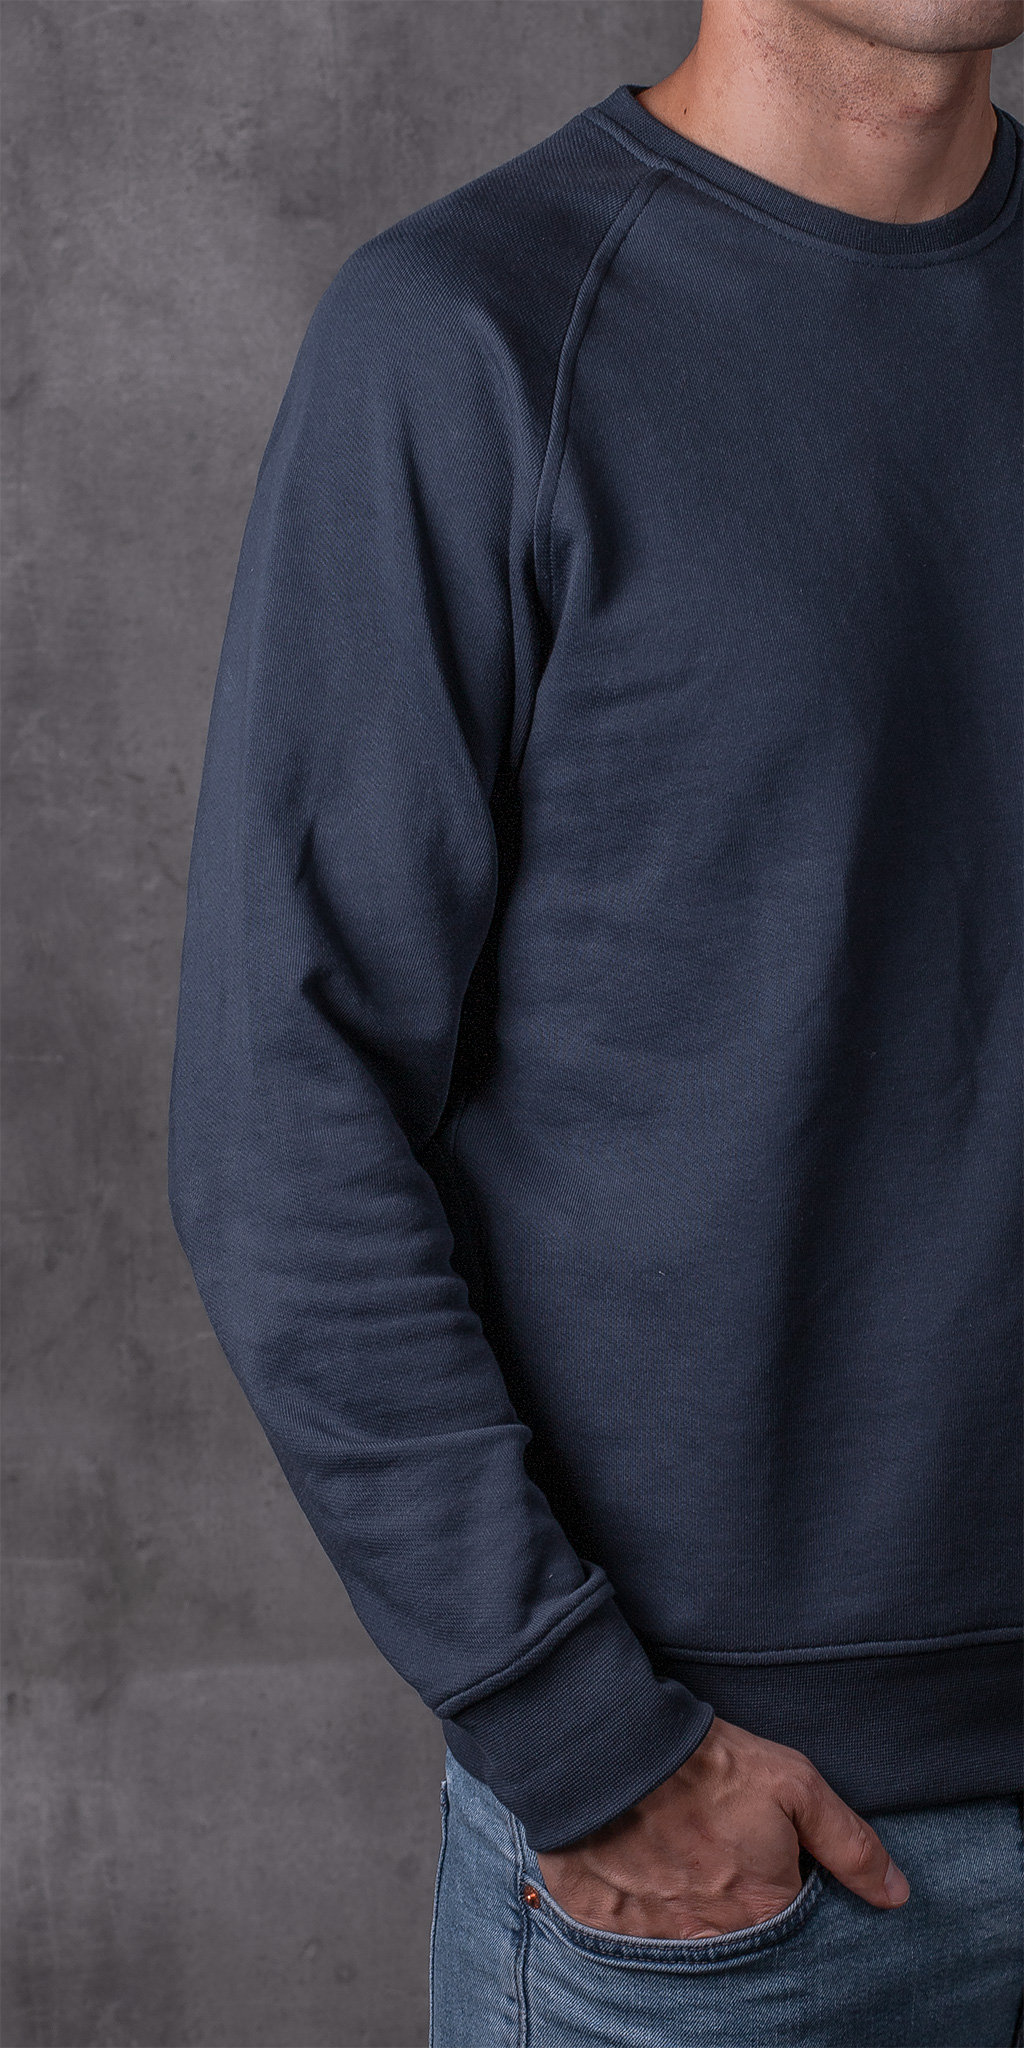 SWEATSHIRT 01.01 NAVY SUDADERA 01.01 AZUL The Seëlk 7